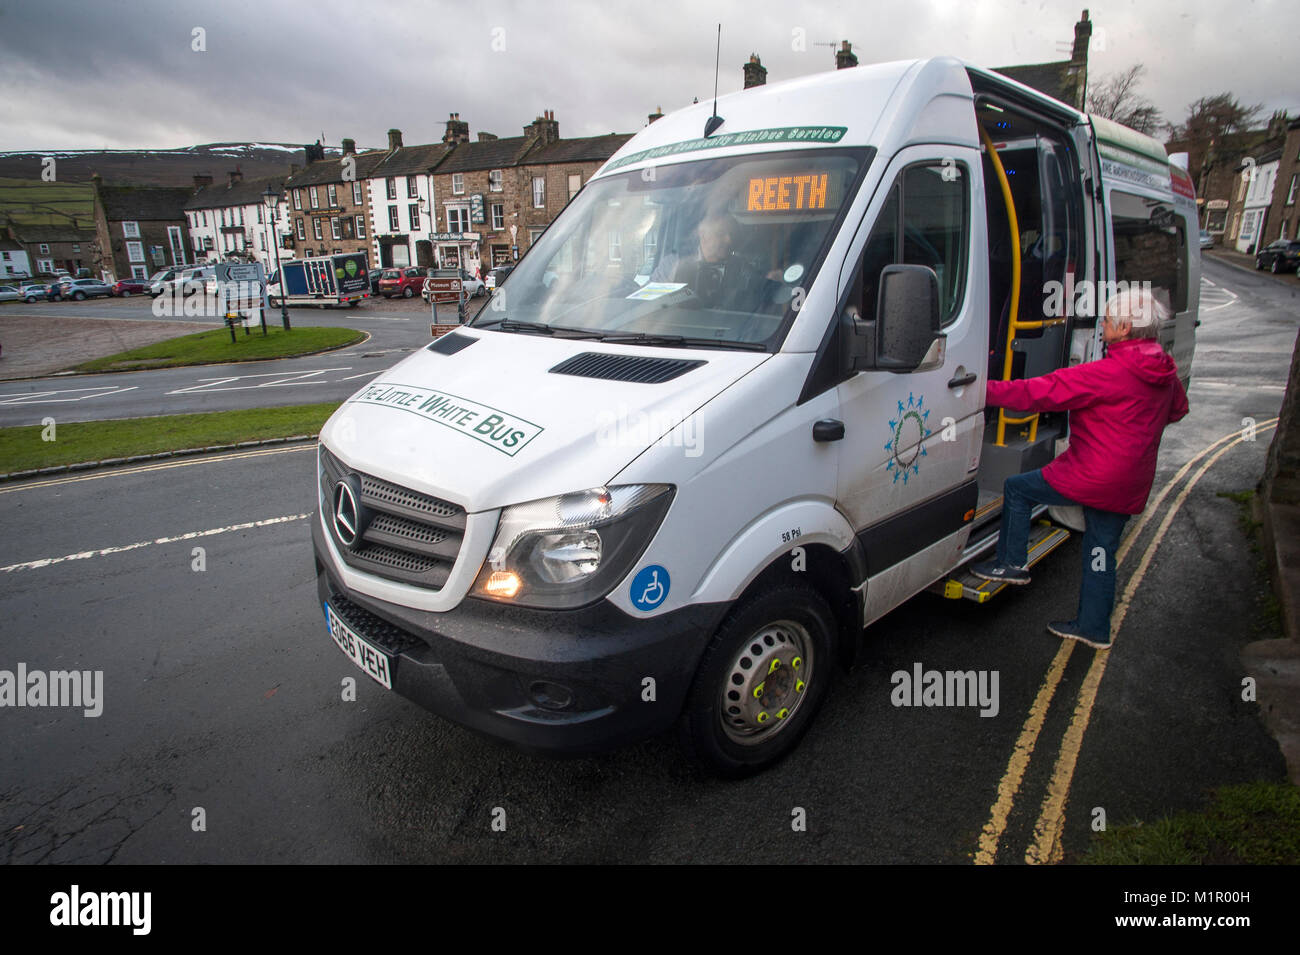 76 yr old Ruth Emerson boards the Little White Bus at Reeth in upper Swaledale to travel to Richmond. Stock Photo